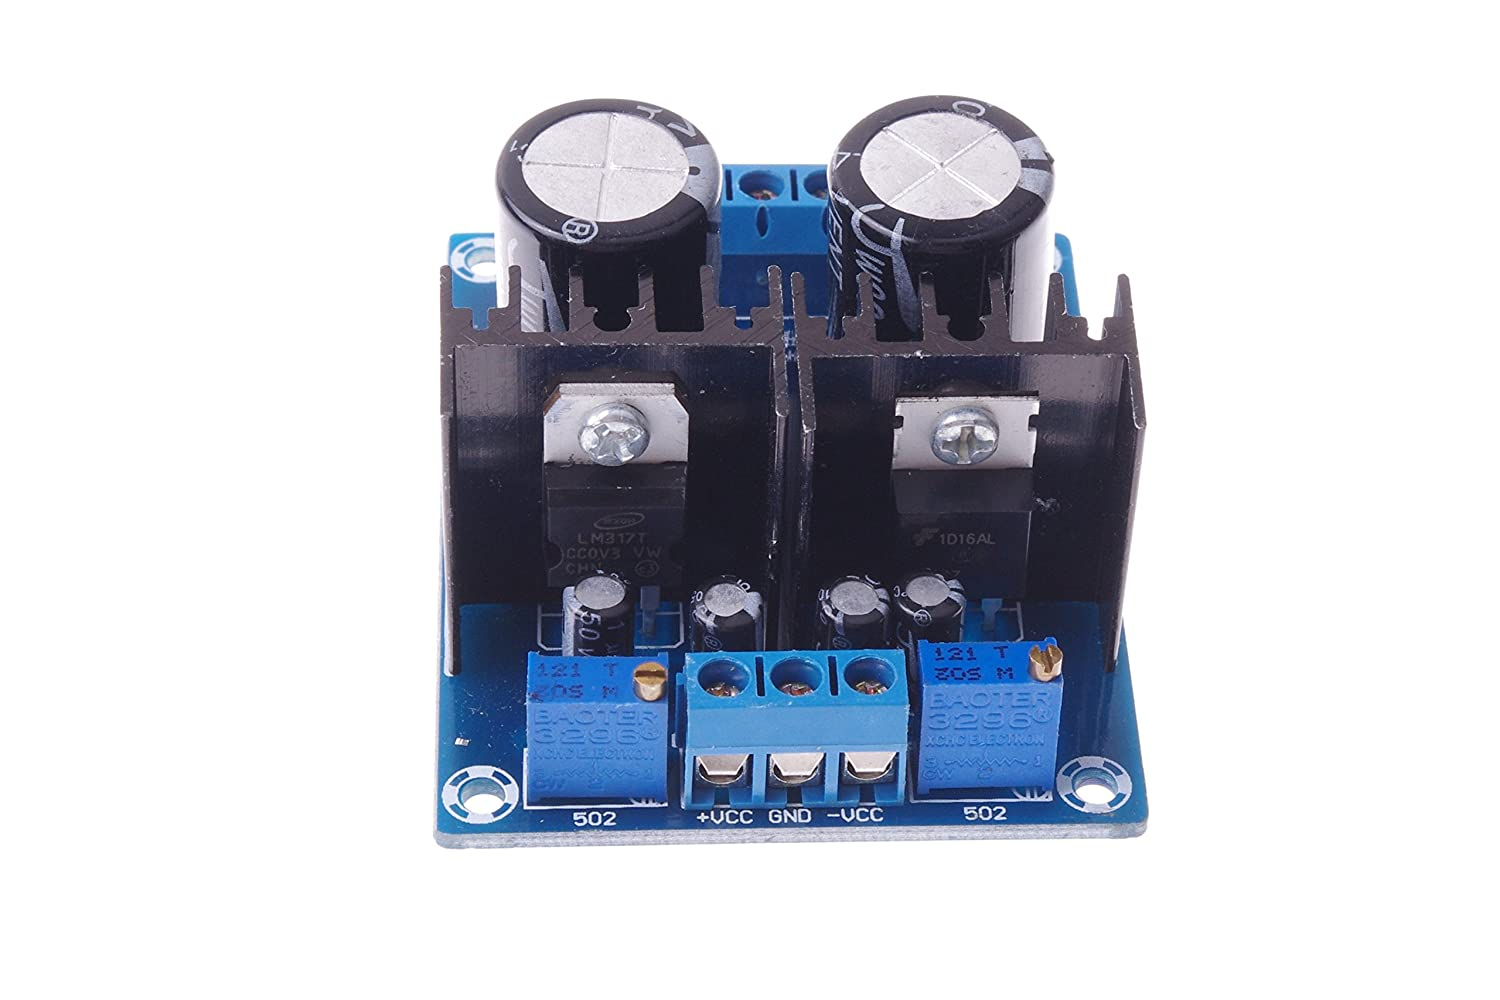 Smakn Lm317 337 Dual Power Supply Adjustable Module 60v Variable Circuit Using Lm317lm337 125v To 37v 15a Converter Home Audio Theater